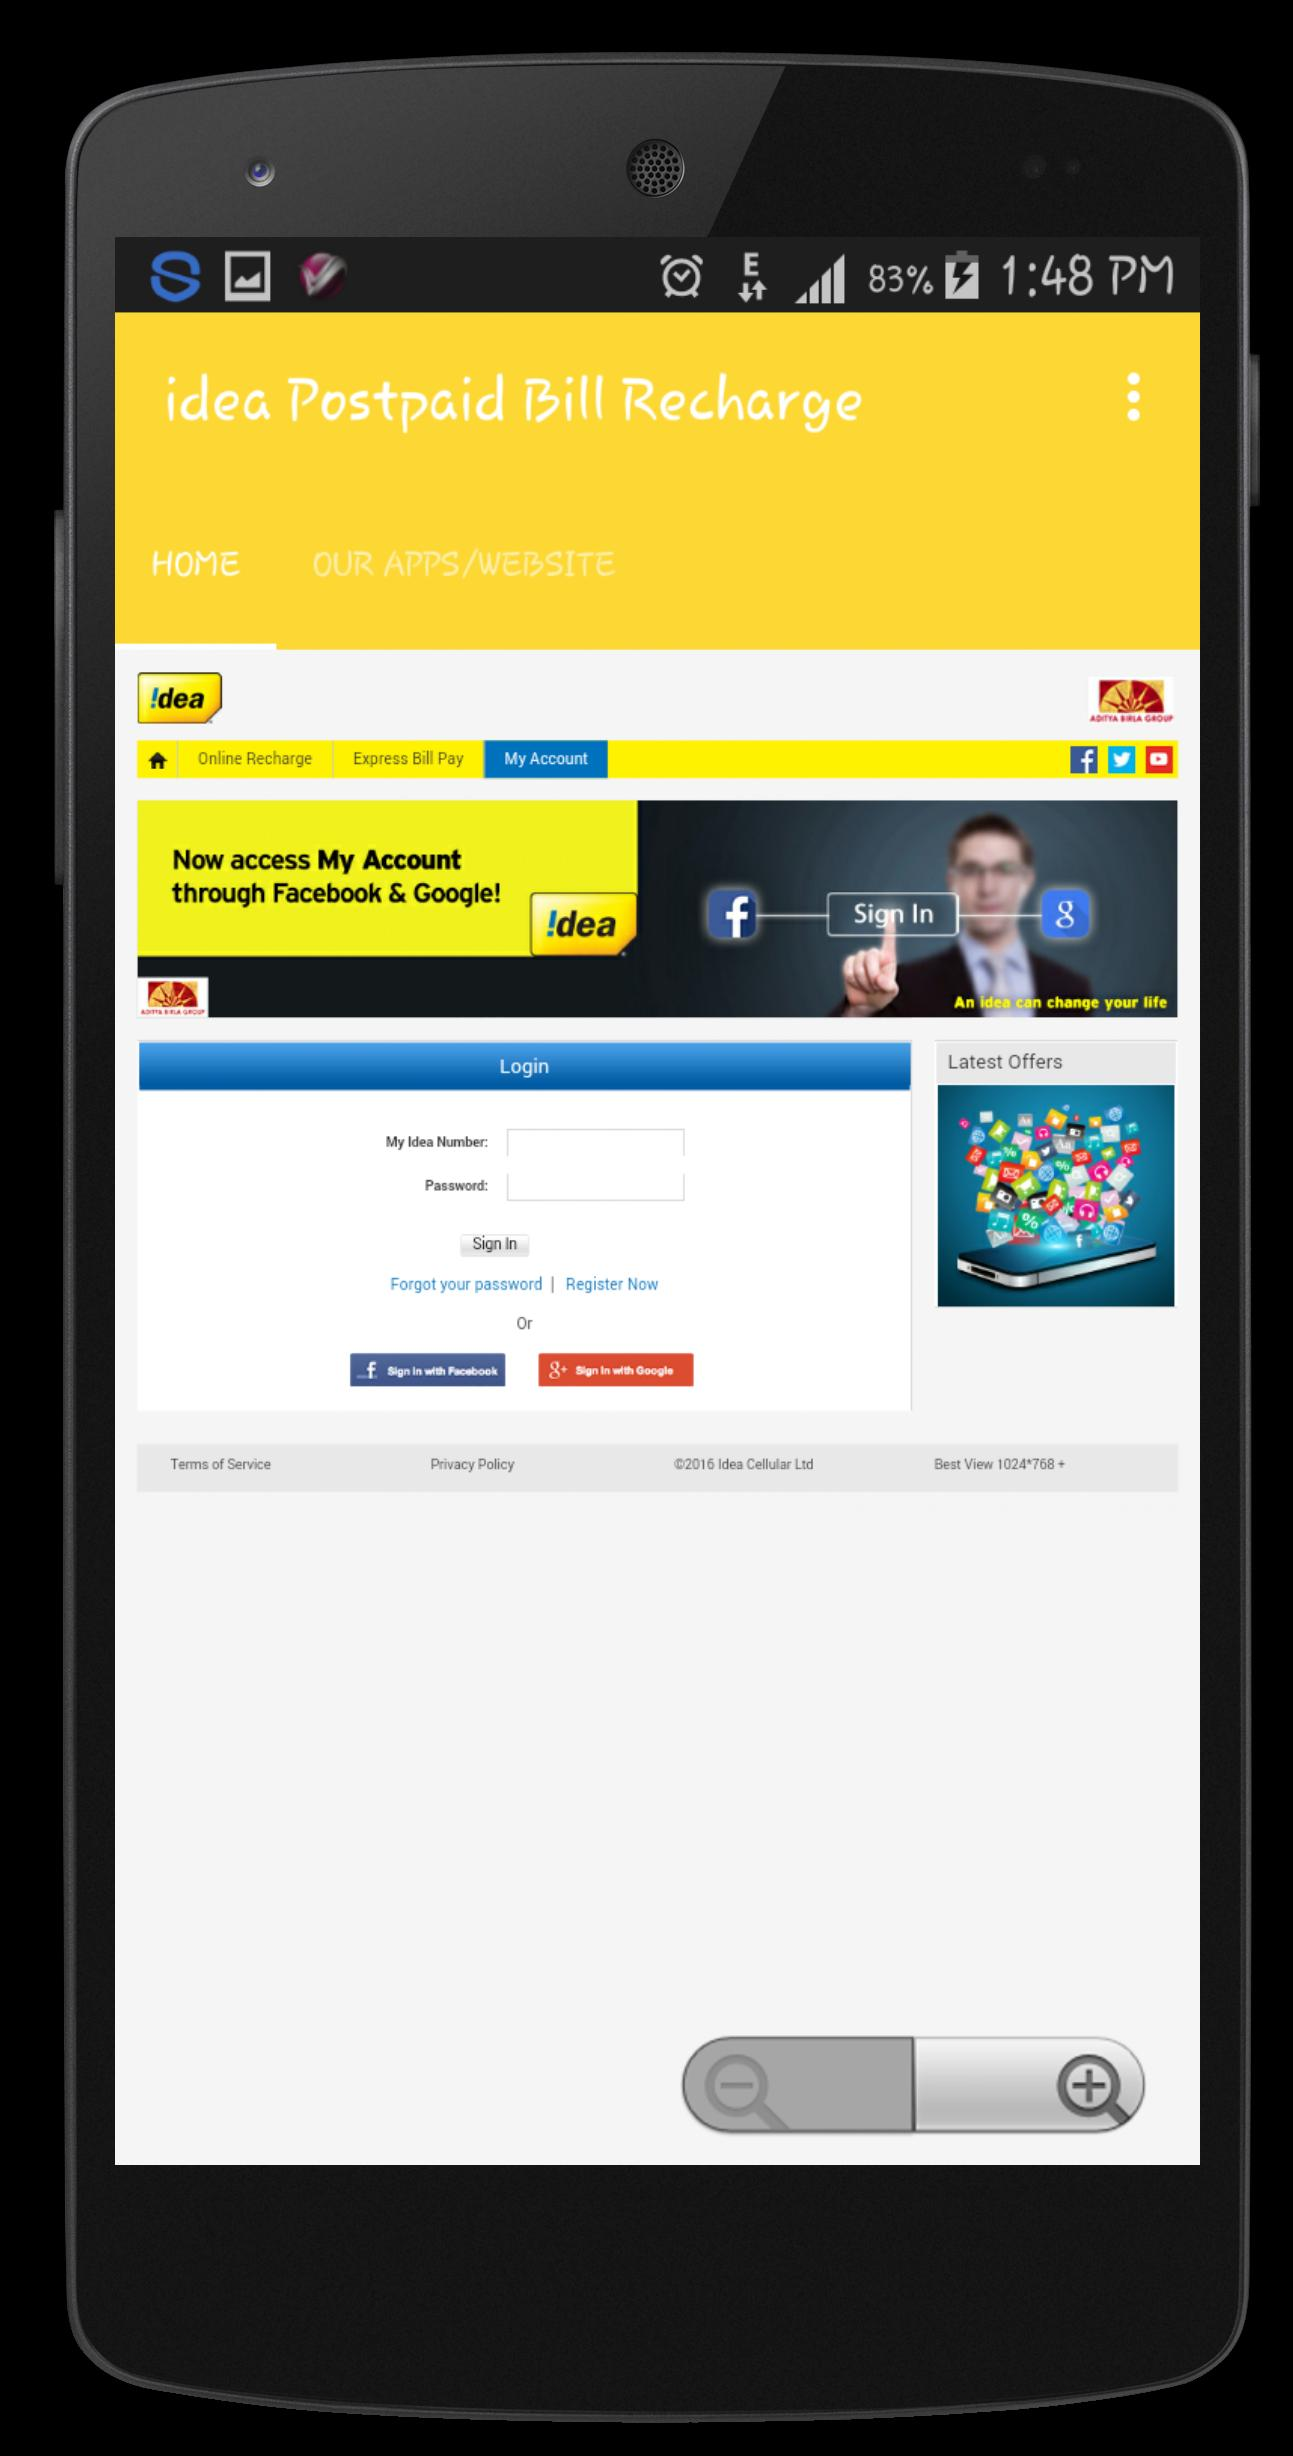 idea Postpaid Bill Recharge for Android - APK Download